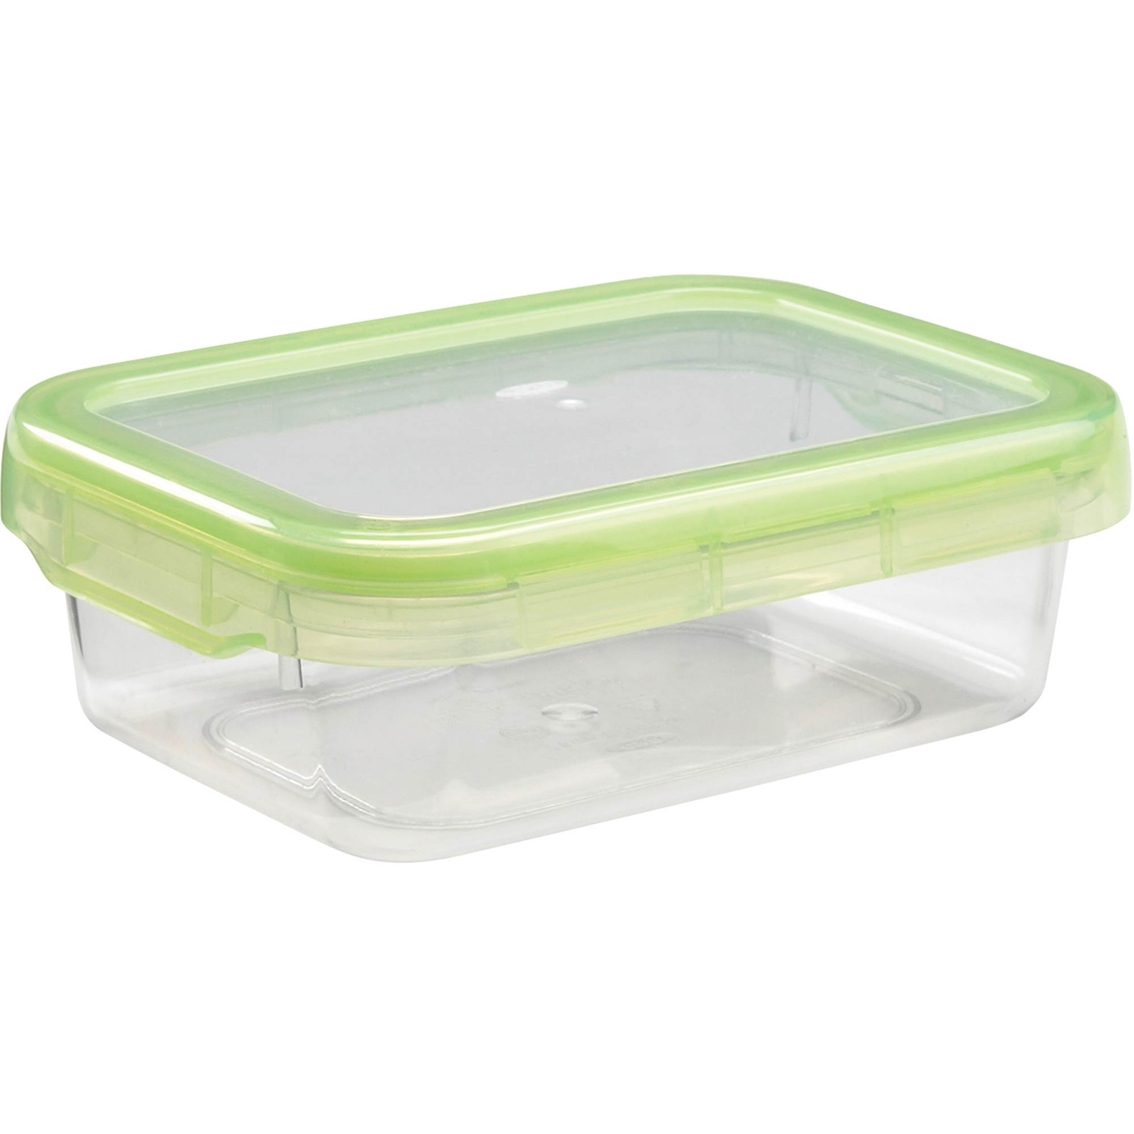 OXO Good Grips LockTop 2.8 Cup Rectangular Food Storage Container